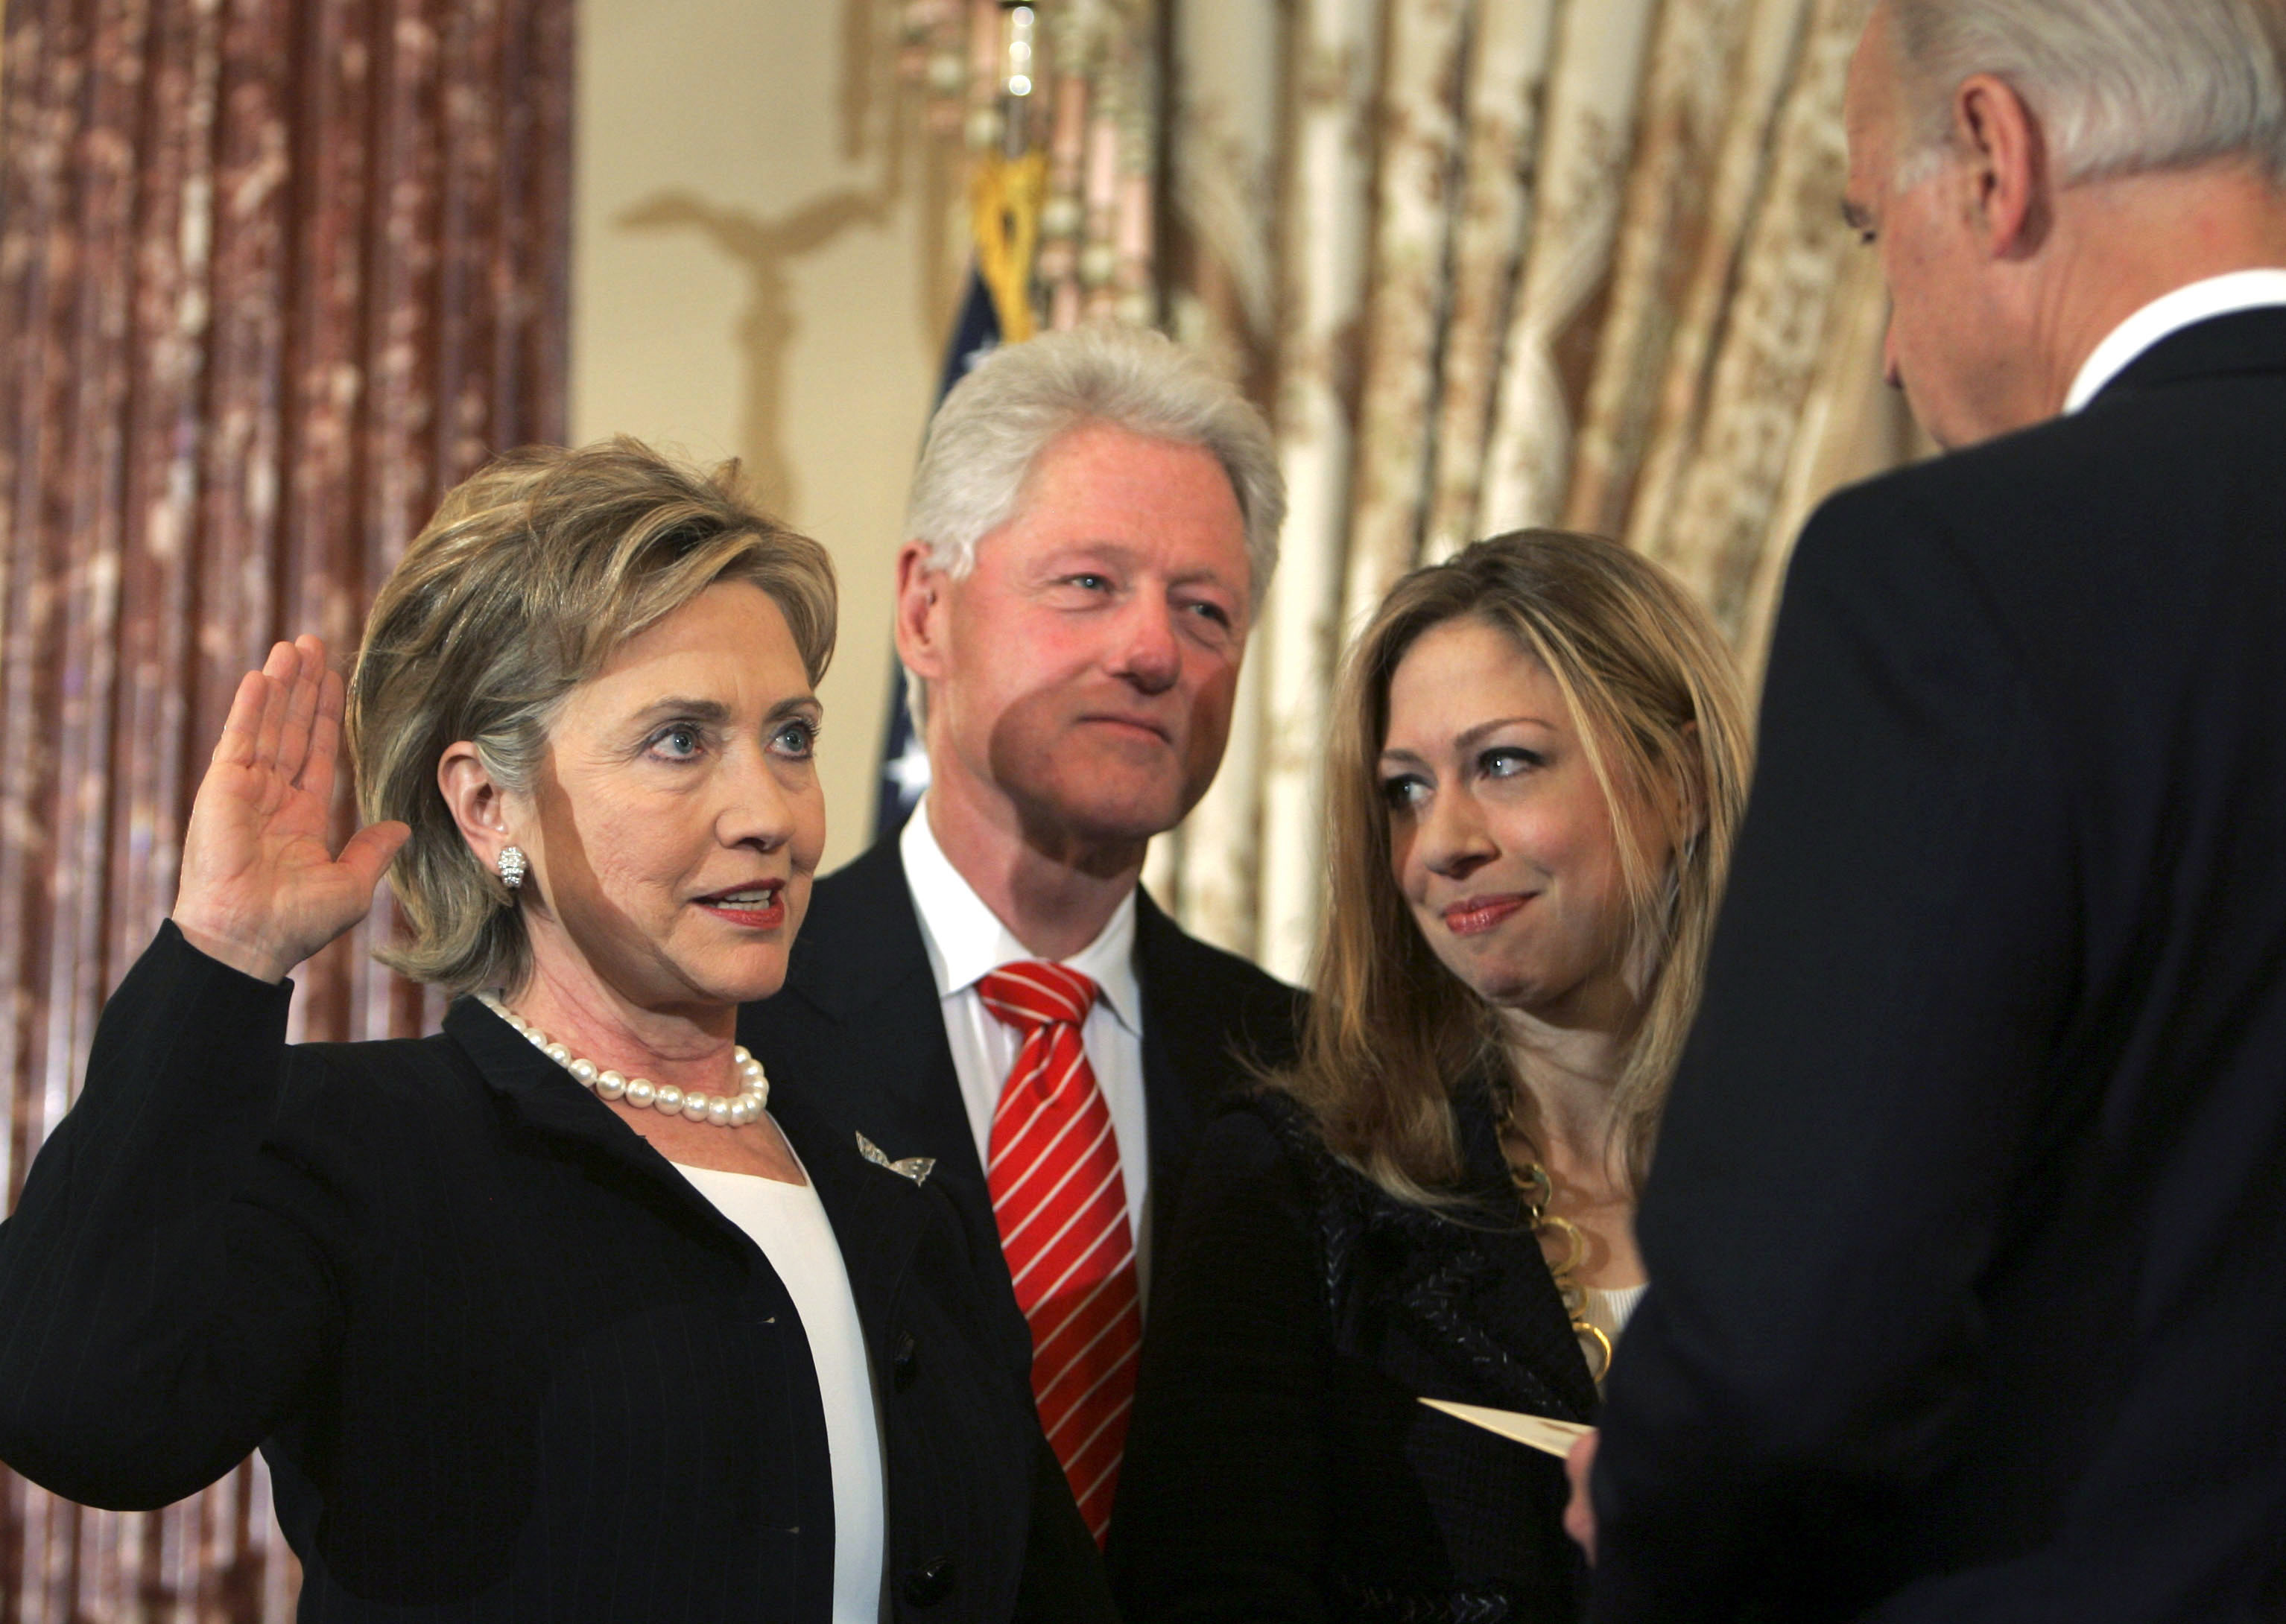 Vice President Joe Biden, right, swears in Secretary of State Hillary Clinton in a ceremonial swearing-in at the State Department in Washington, accompanied by her husband, former President Bill Clinton, and their daughter, Chelsea.